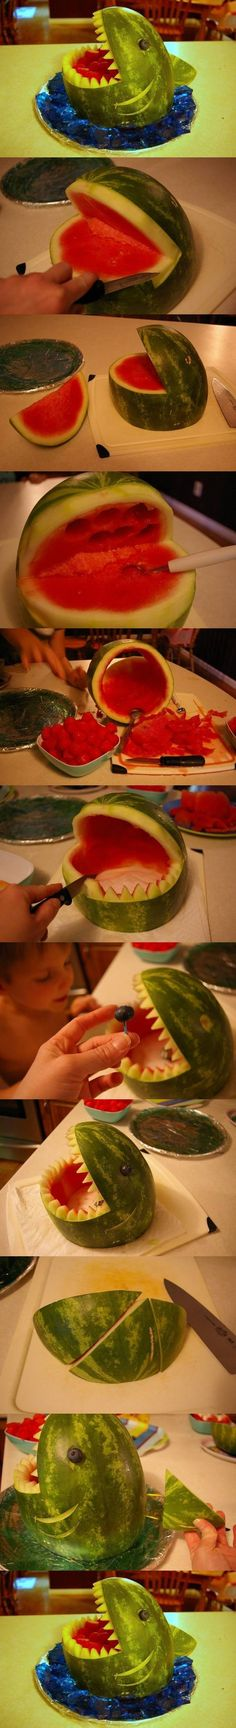 Food Art DIY - Watermelon Shark | iCreativeIdeas.com Like Us on Facebook ==> https://www.facebook.com/icreativeideas